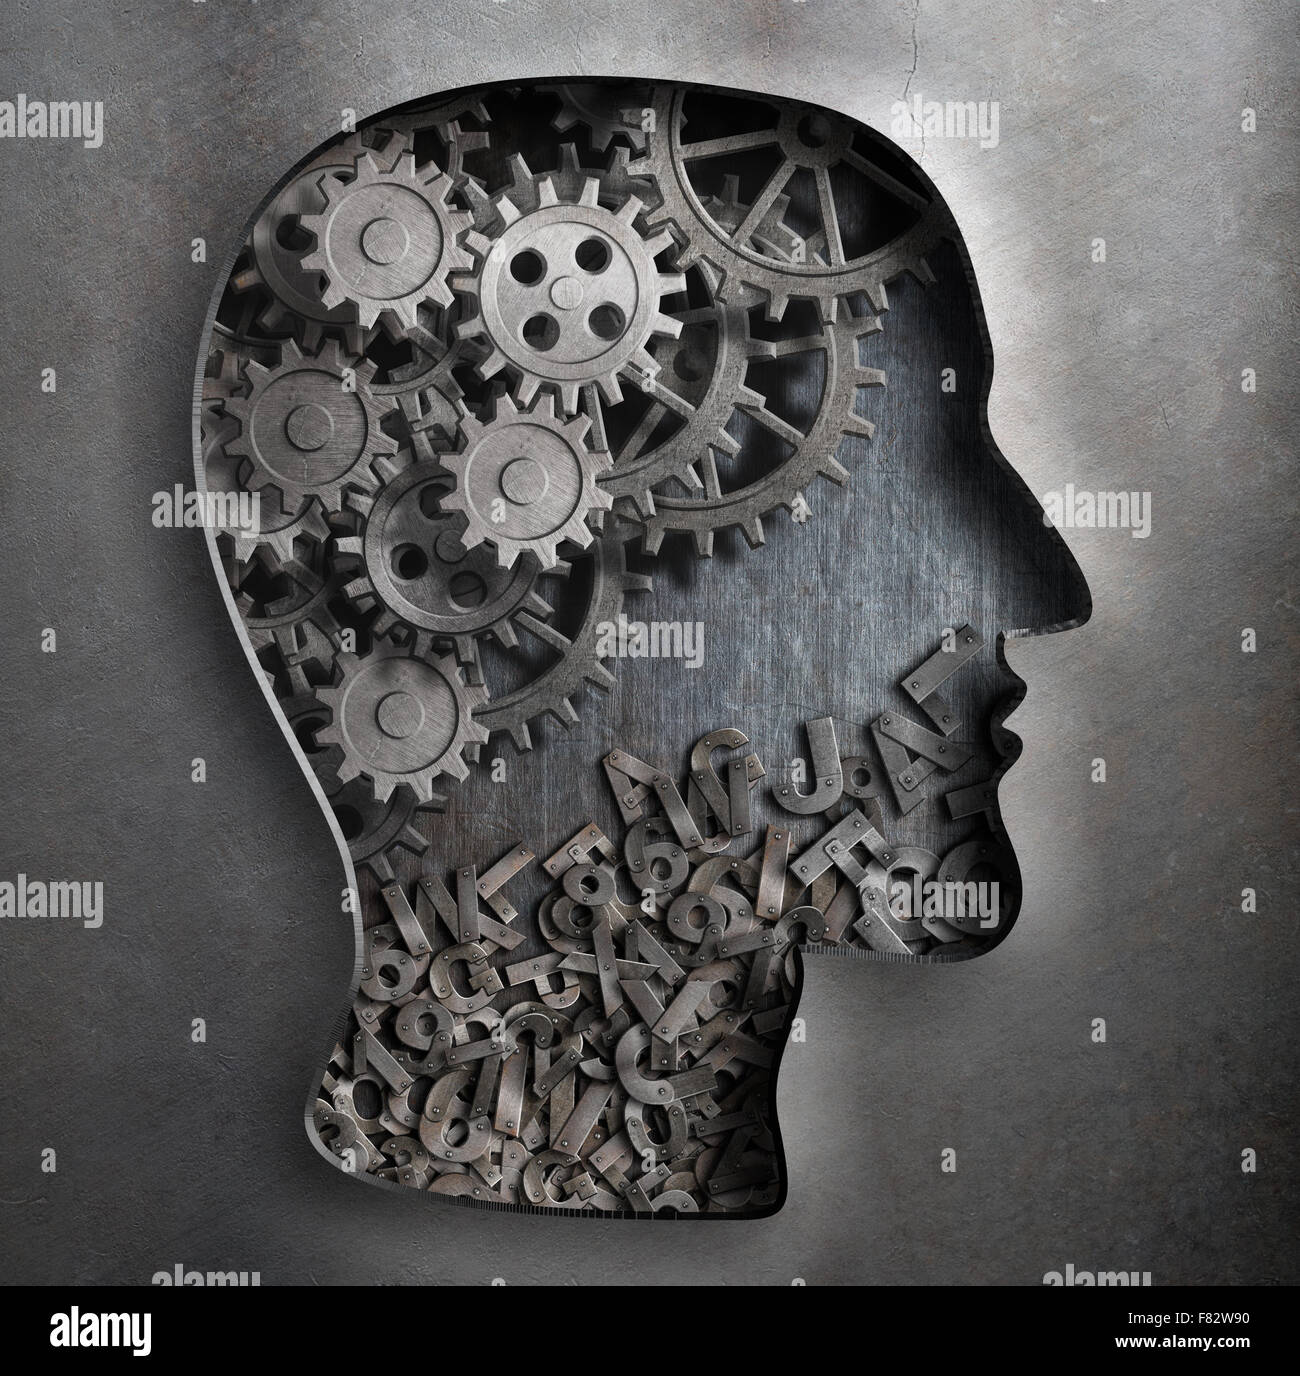 Brain work model. Thinking,  psychology, creativity, language concept. - Stock Image